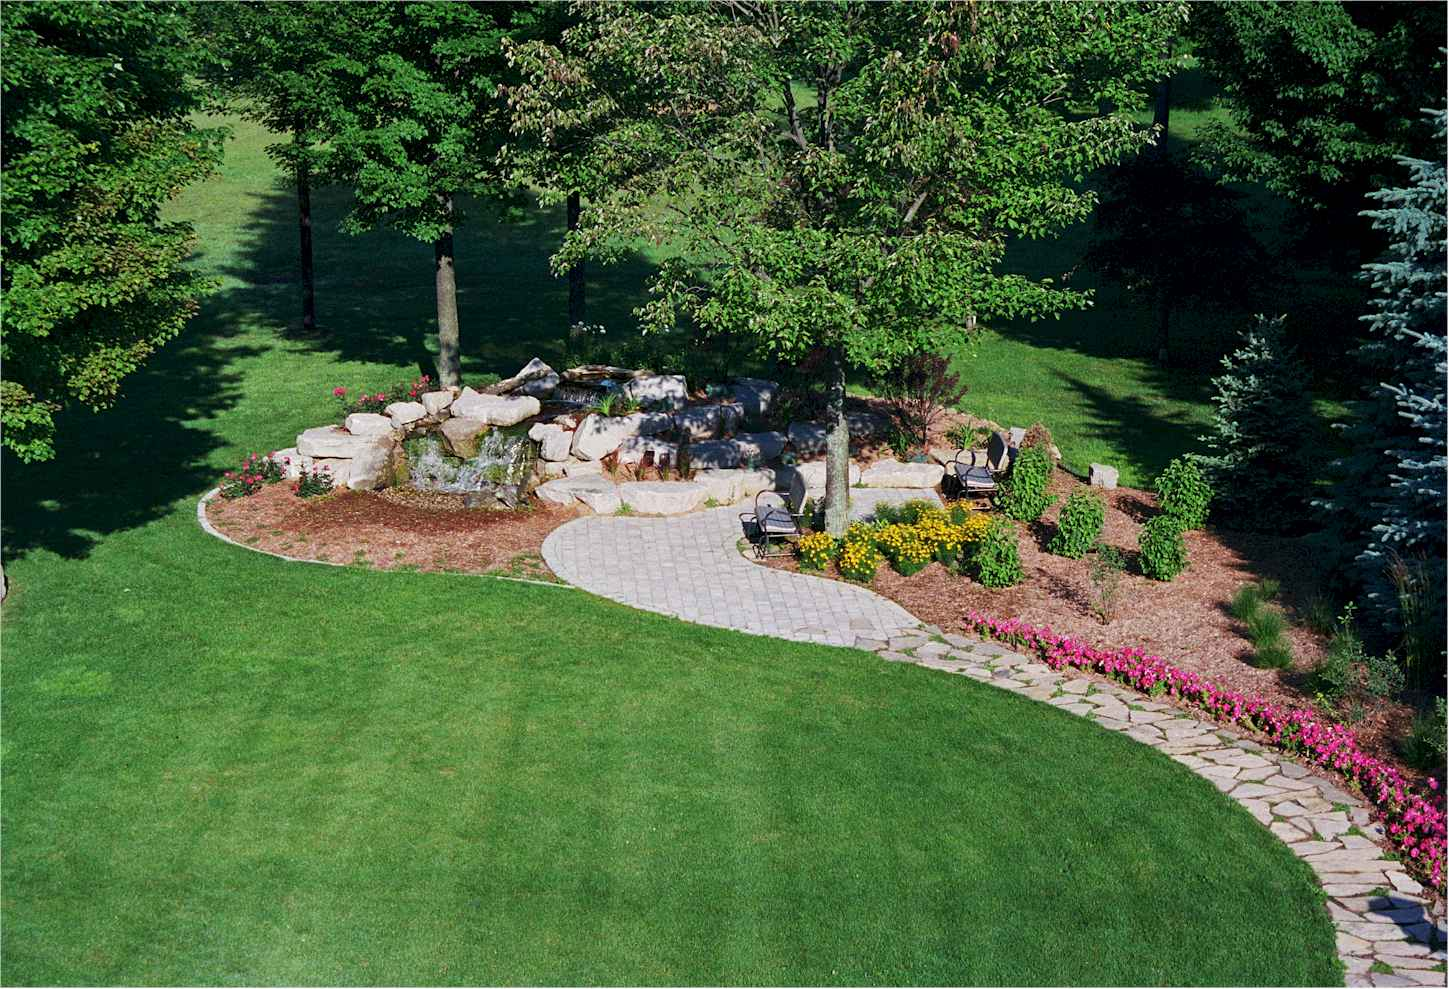 5 landscaping ideas to wow the neighbors for Backyard landscape design ideas